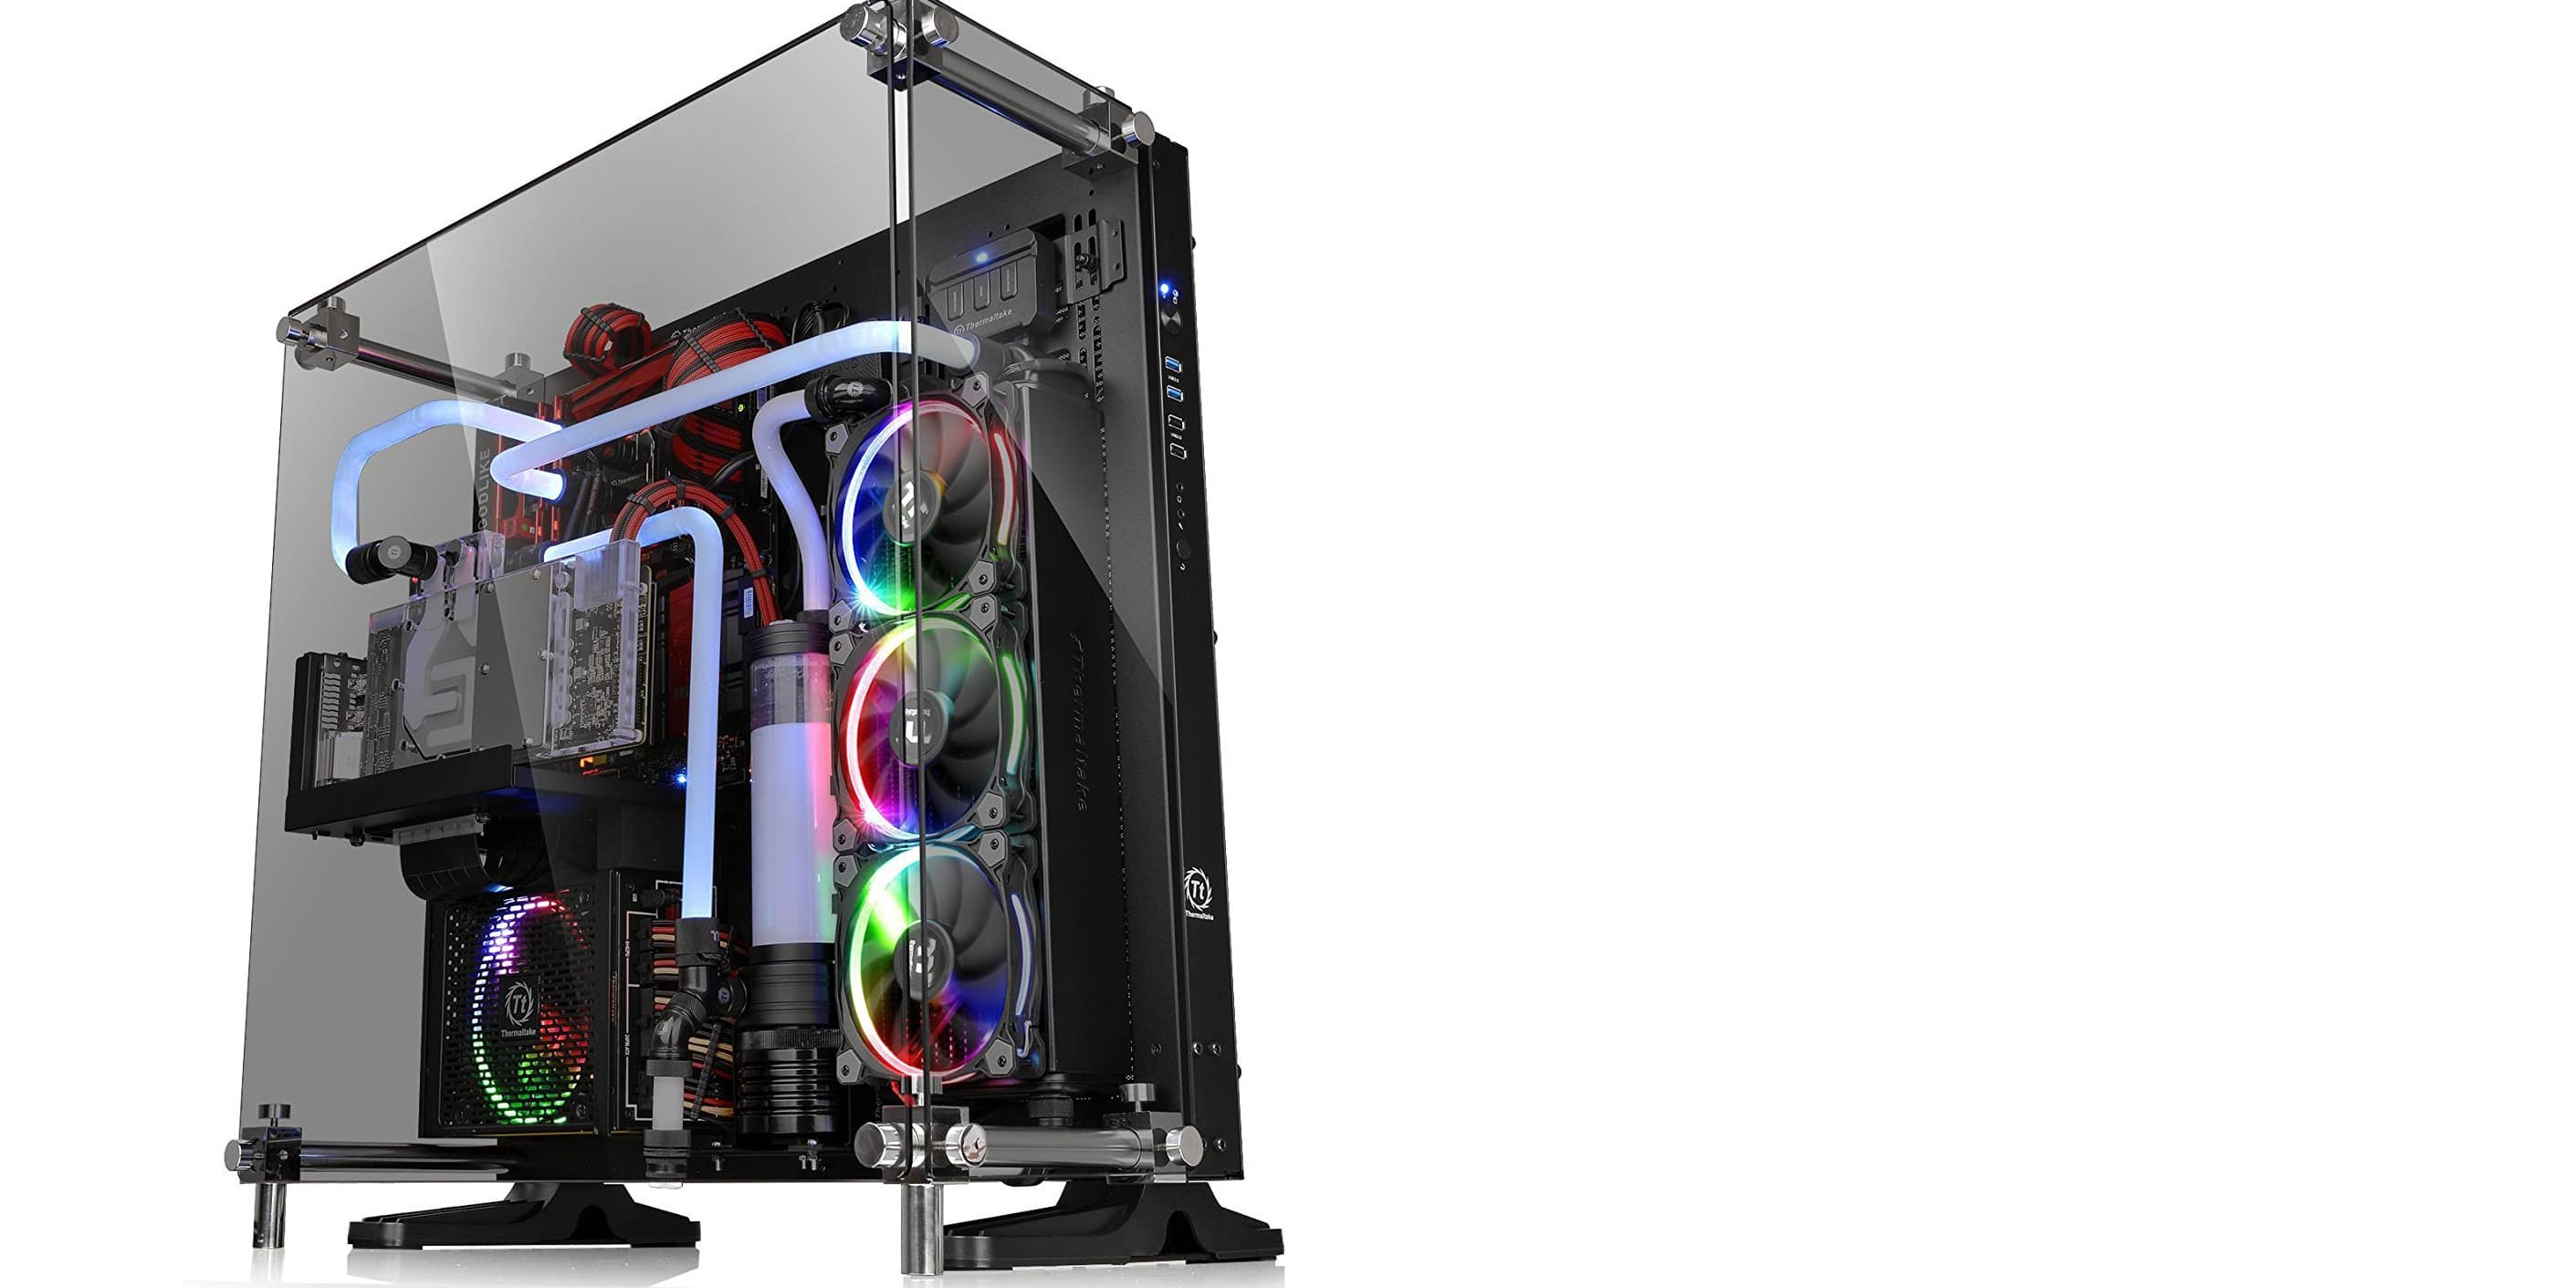 Top 10 Best Tempered Glass PC Cases in 2019- Reviews - Best for